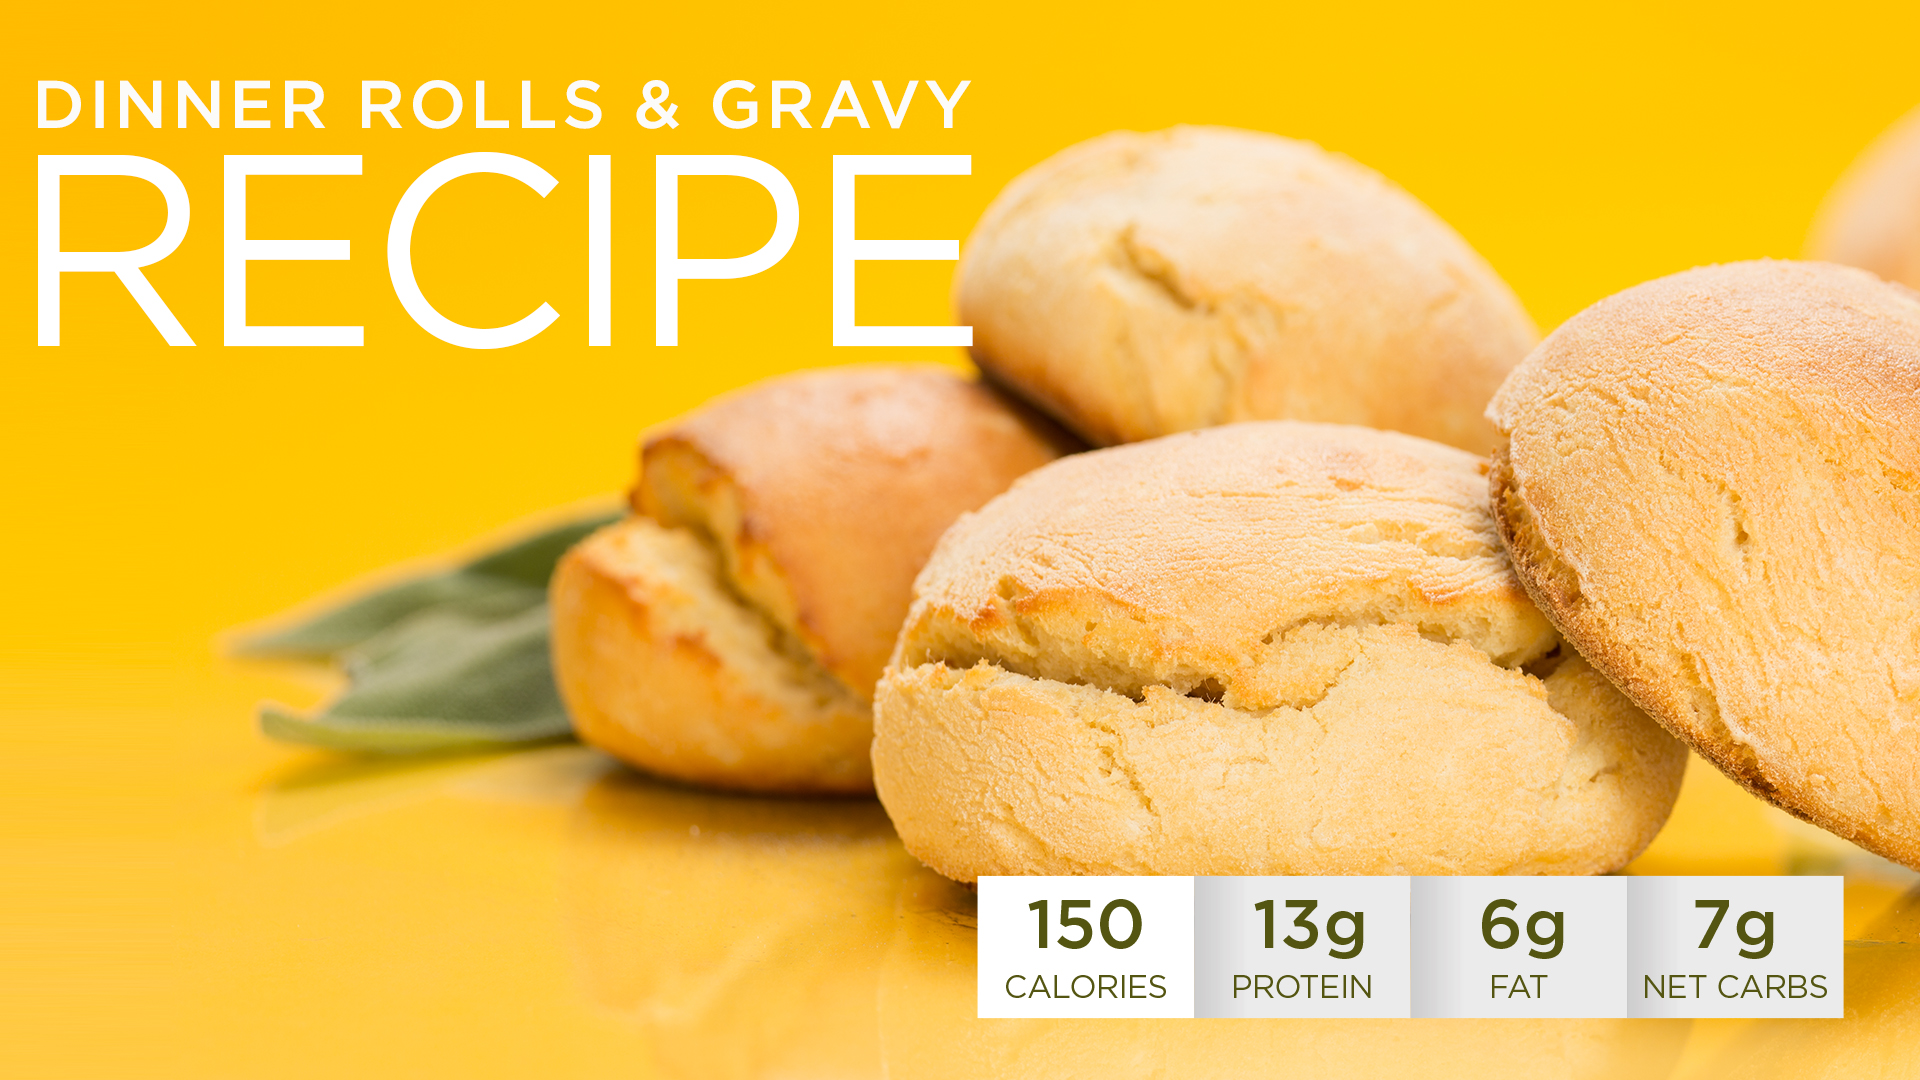 Healthy Holidays Recipe: Quest Nutrition Dinner Rolls and Gravy